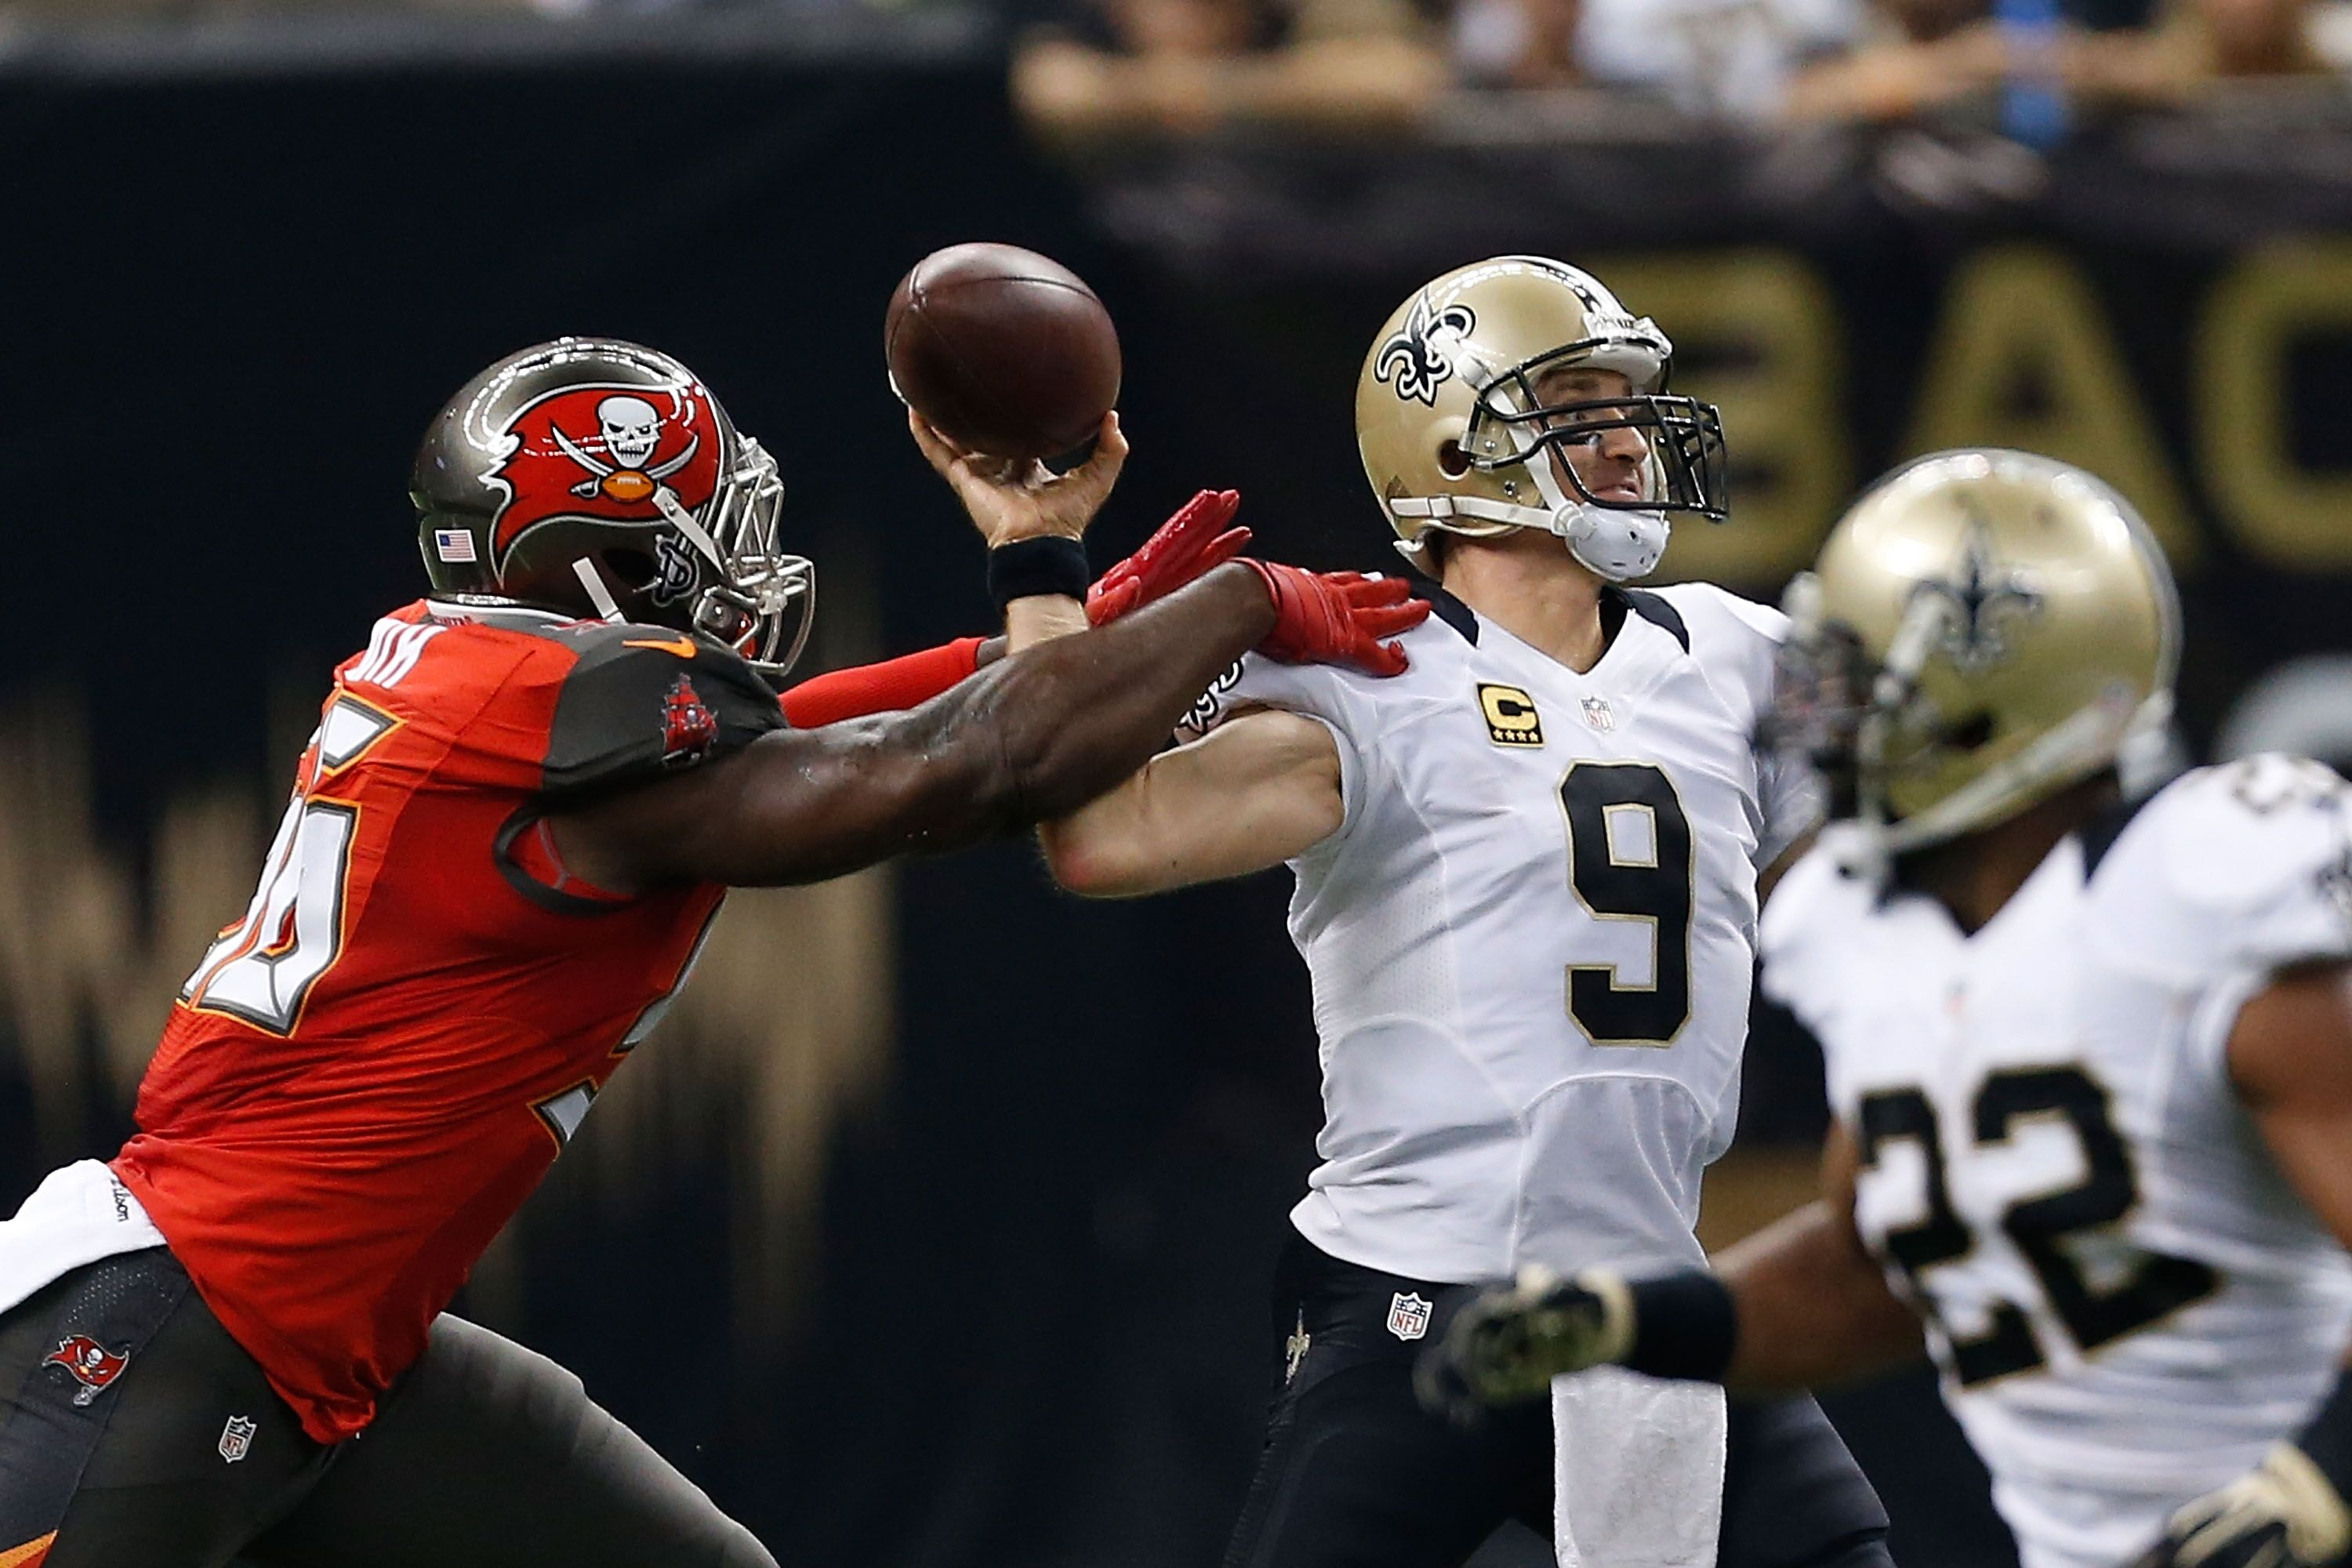 489326142-tampa-bay-buccaneers-v-new-orleans-saints.jpg